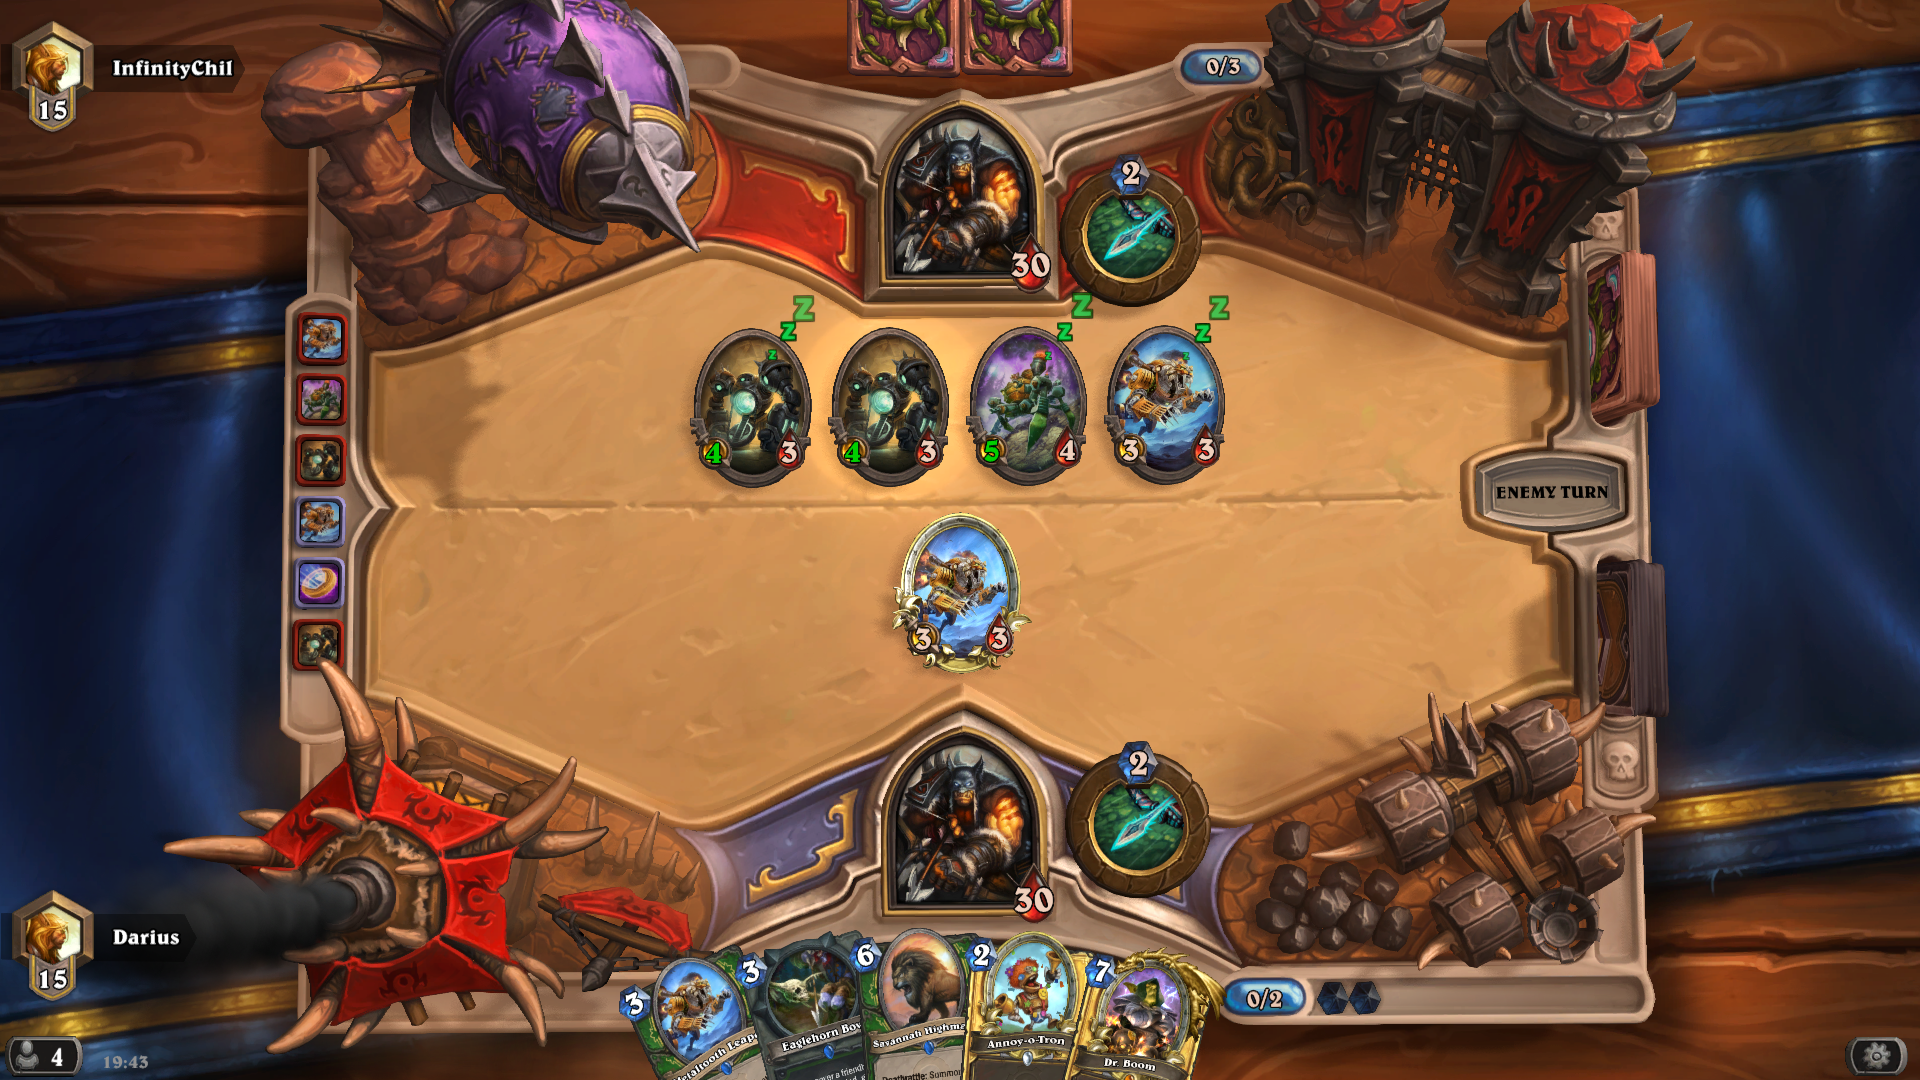 Hearthstone Screenshot 08-04-15 19.43.57.png